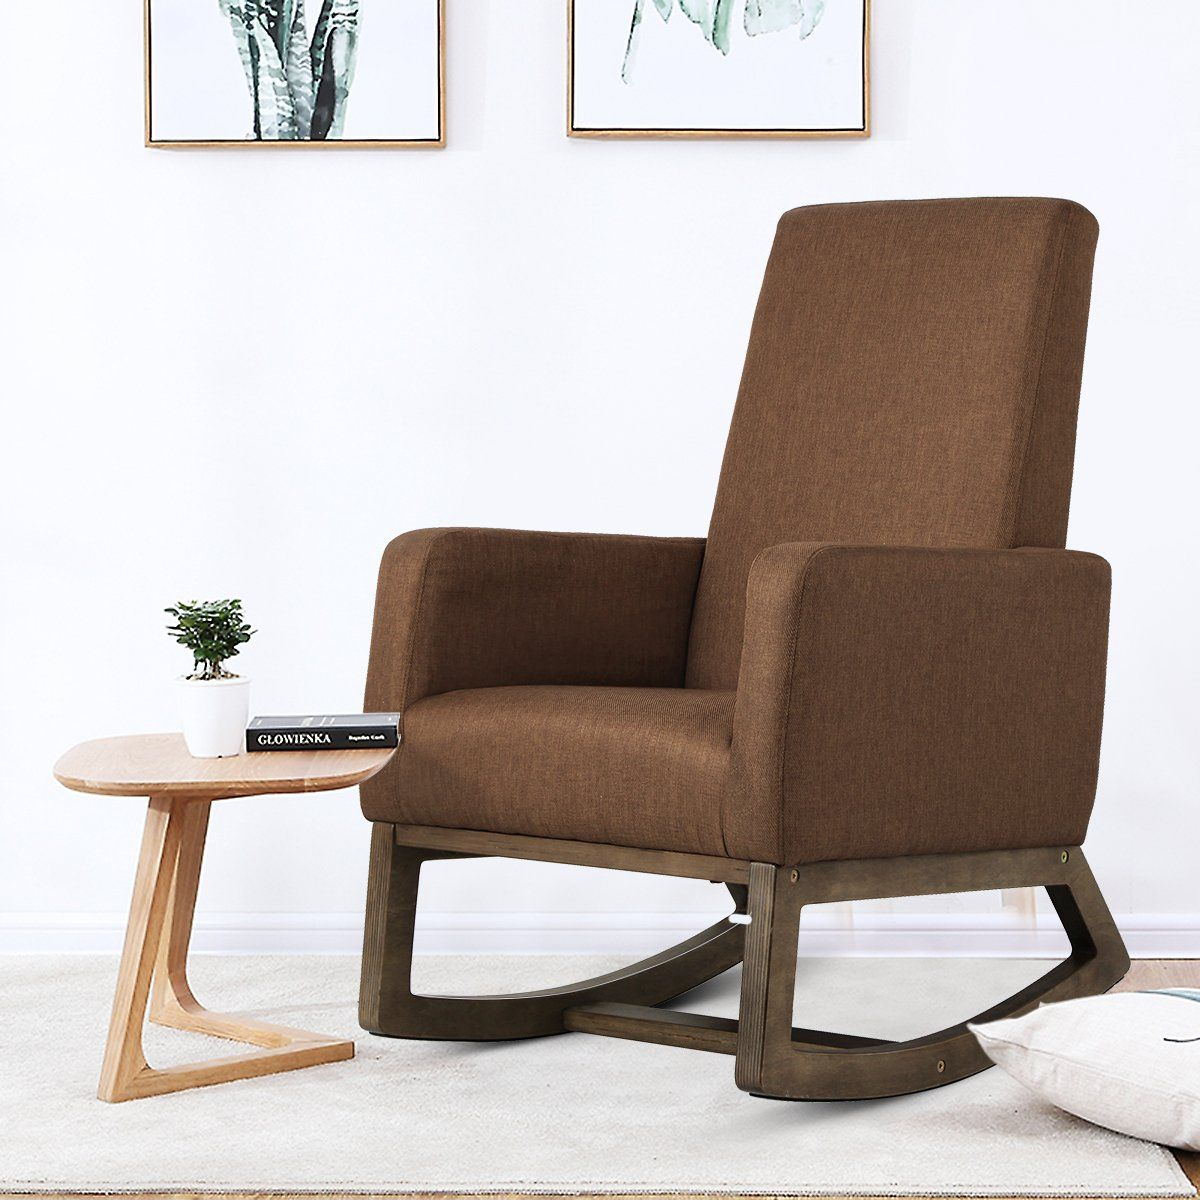 Homedex Fabric Morden Rocking Upholstered Relax Chair Pertaining To Espresso Brown Rocking Chairs (#12 of 20)